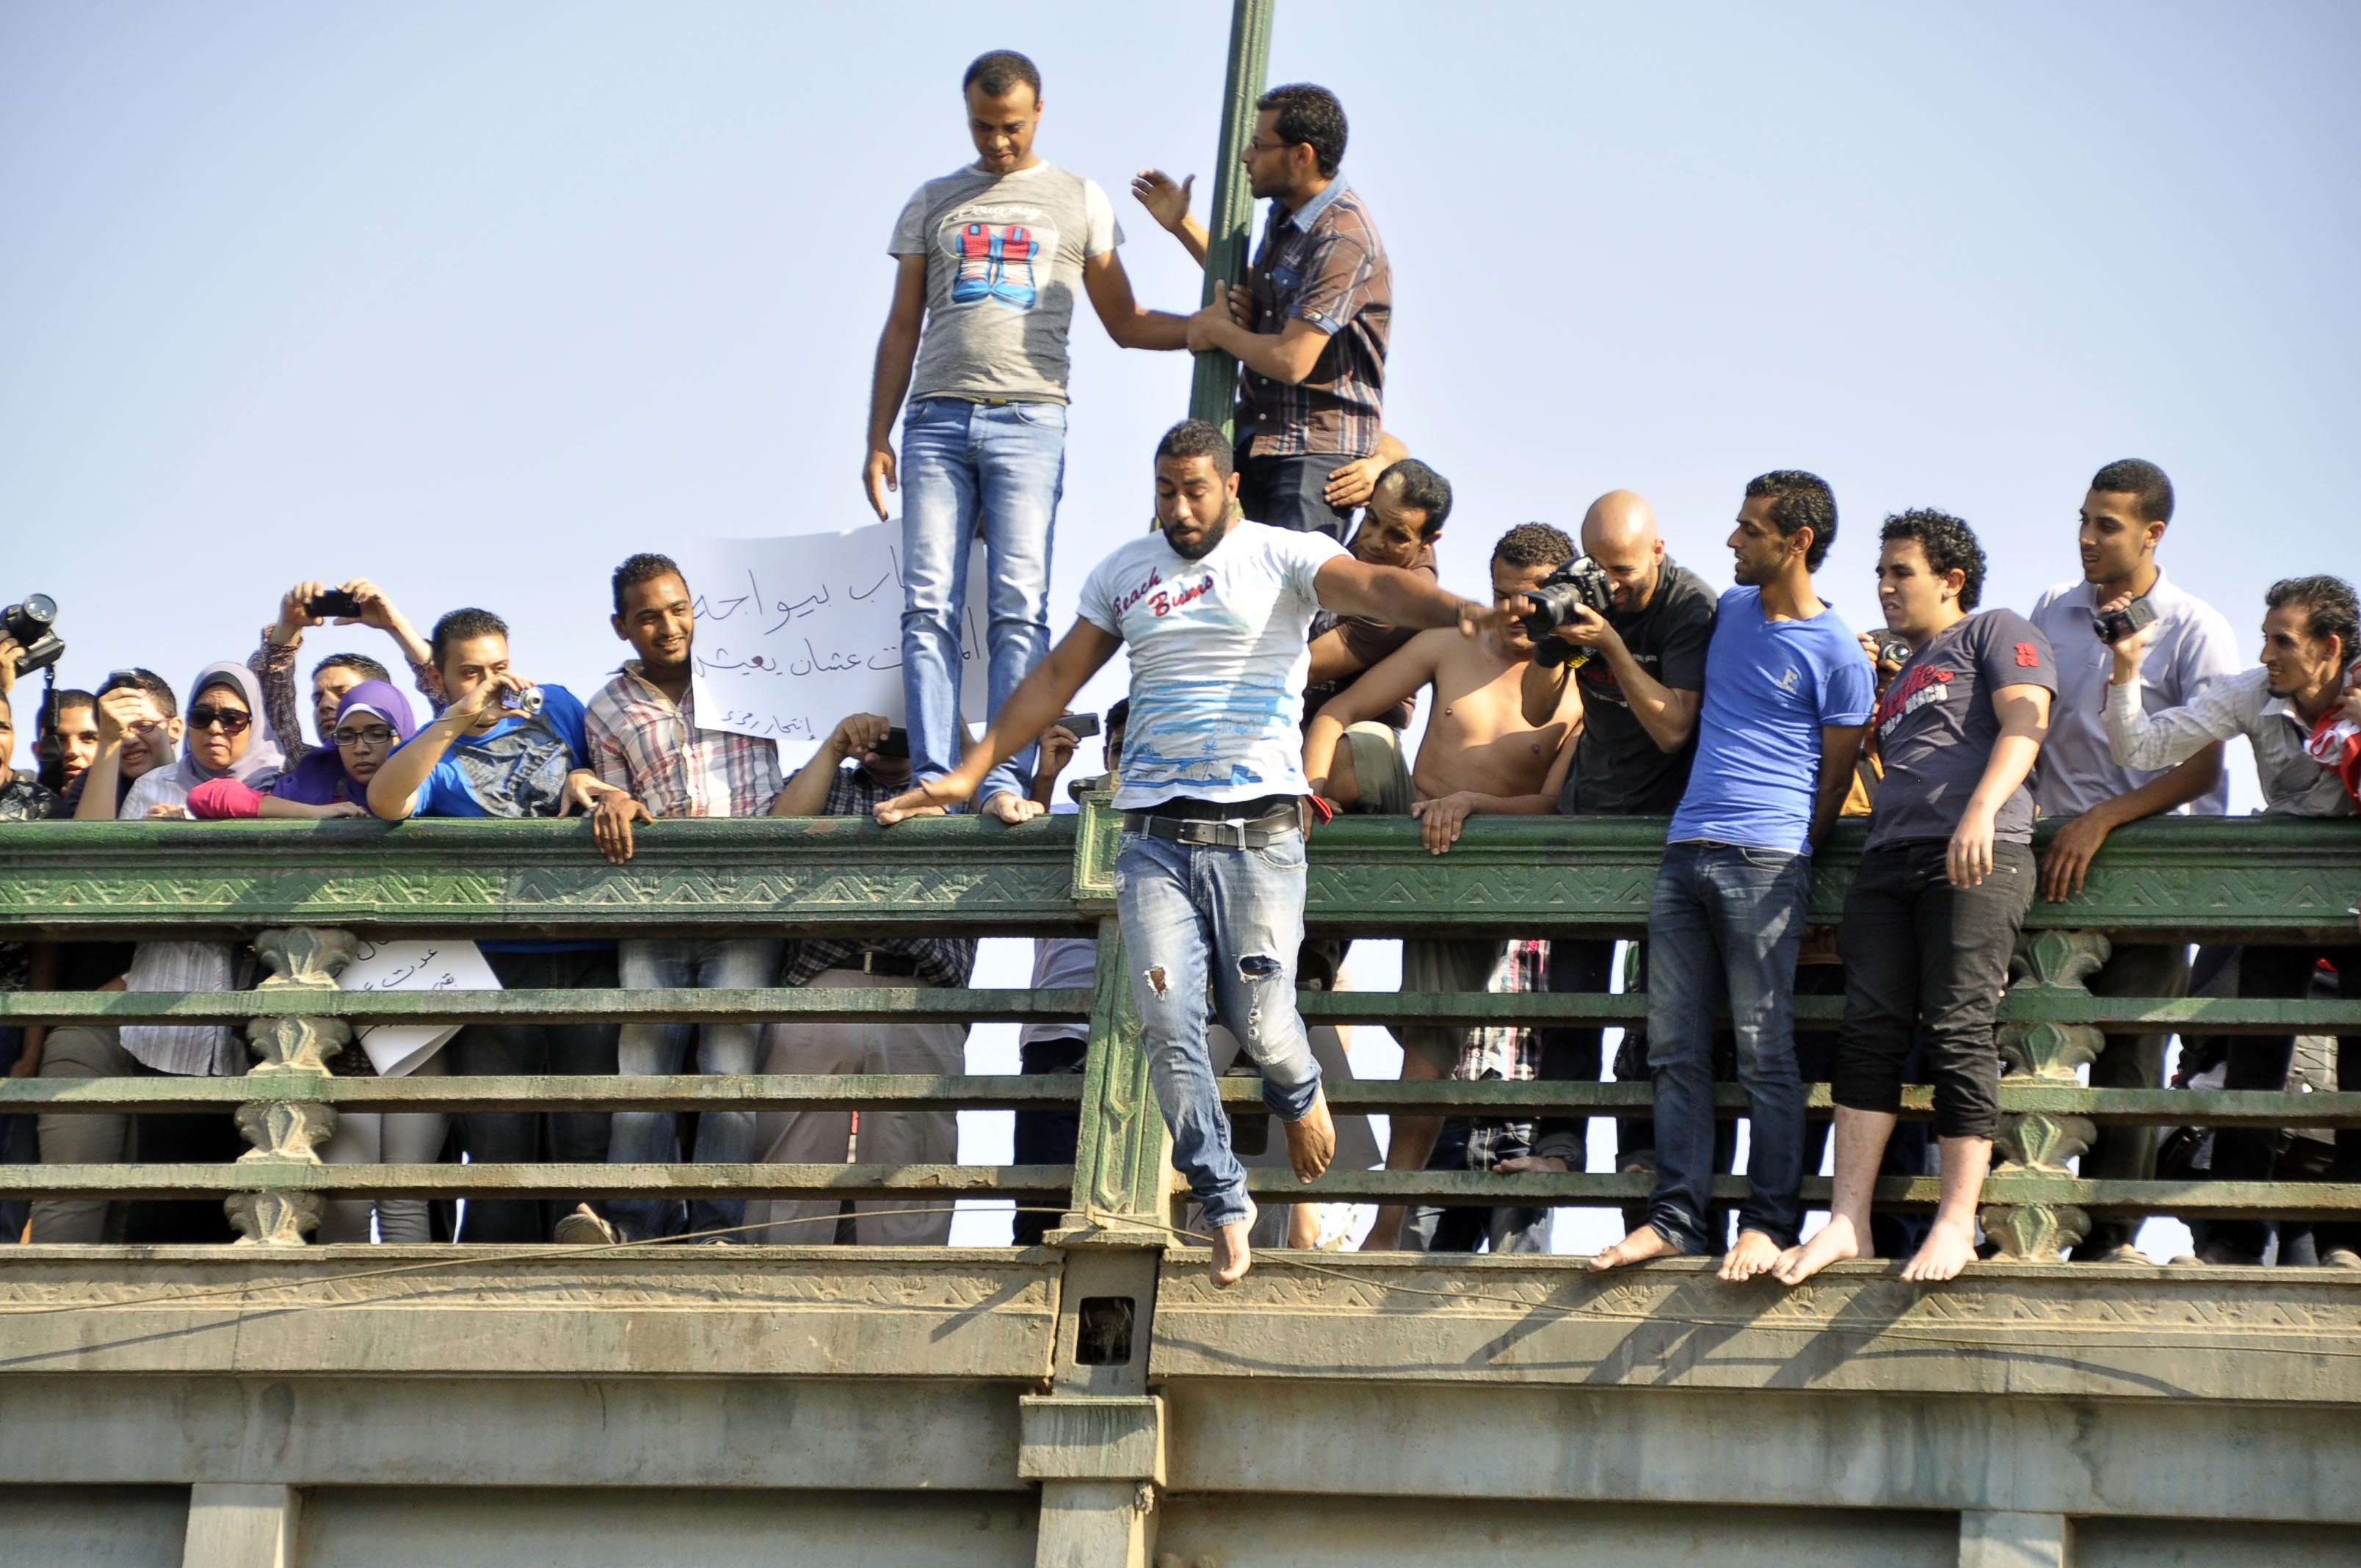 Approximately eight protesters jumped off the Qasr Al-Nil Bridge into the Nile river in a show of protest against Morsi (Photo by Ahmed AlMalky/DNE)